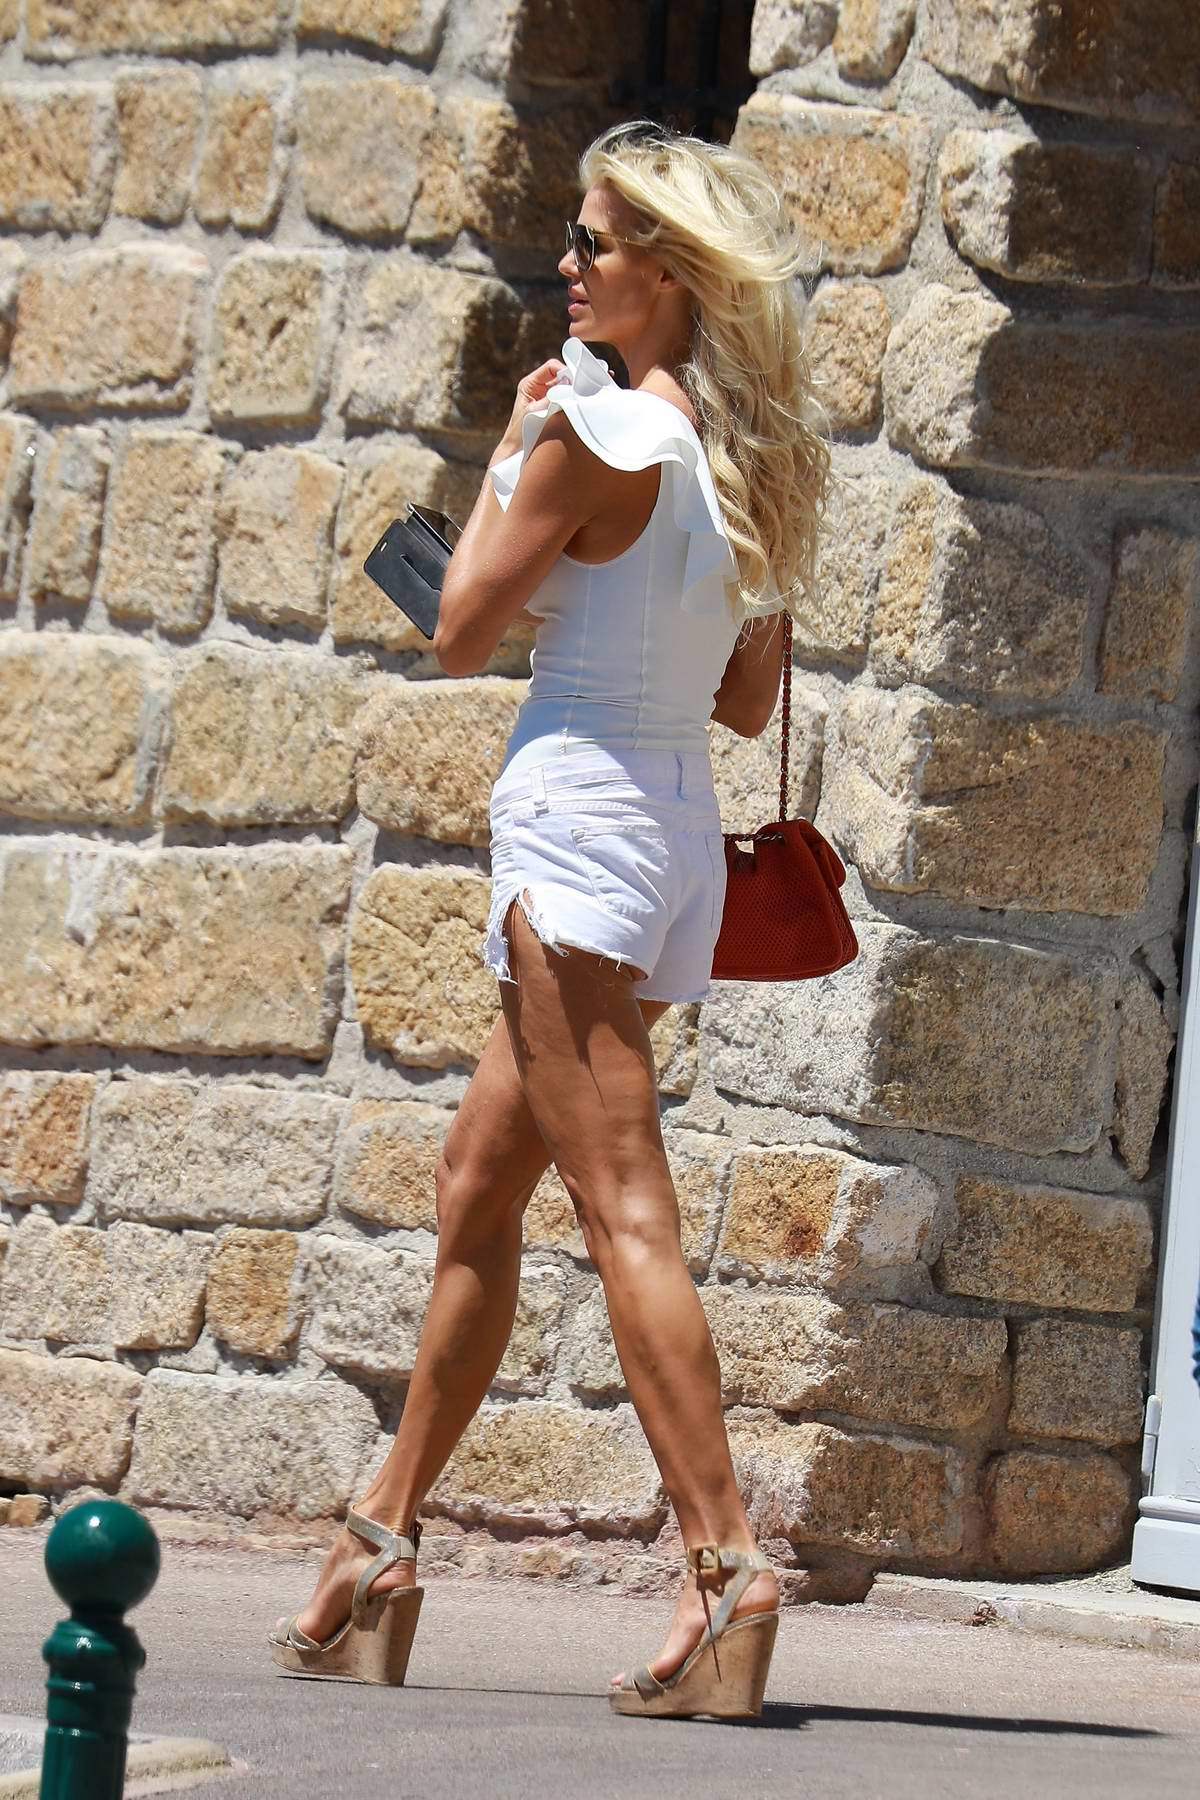 victoria-silvstedt-in-white-swimsuit-enjoying-a-sunny-day-in-saint-tropez-020717_2.jpg